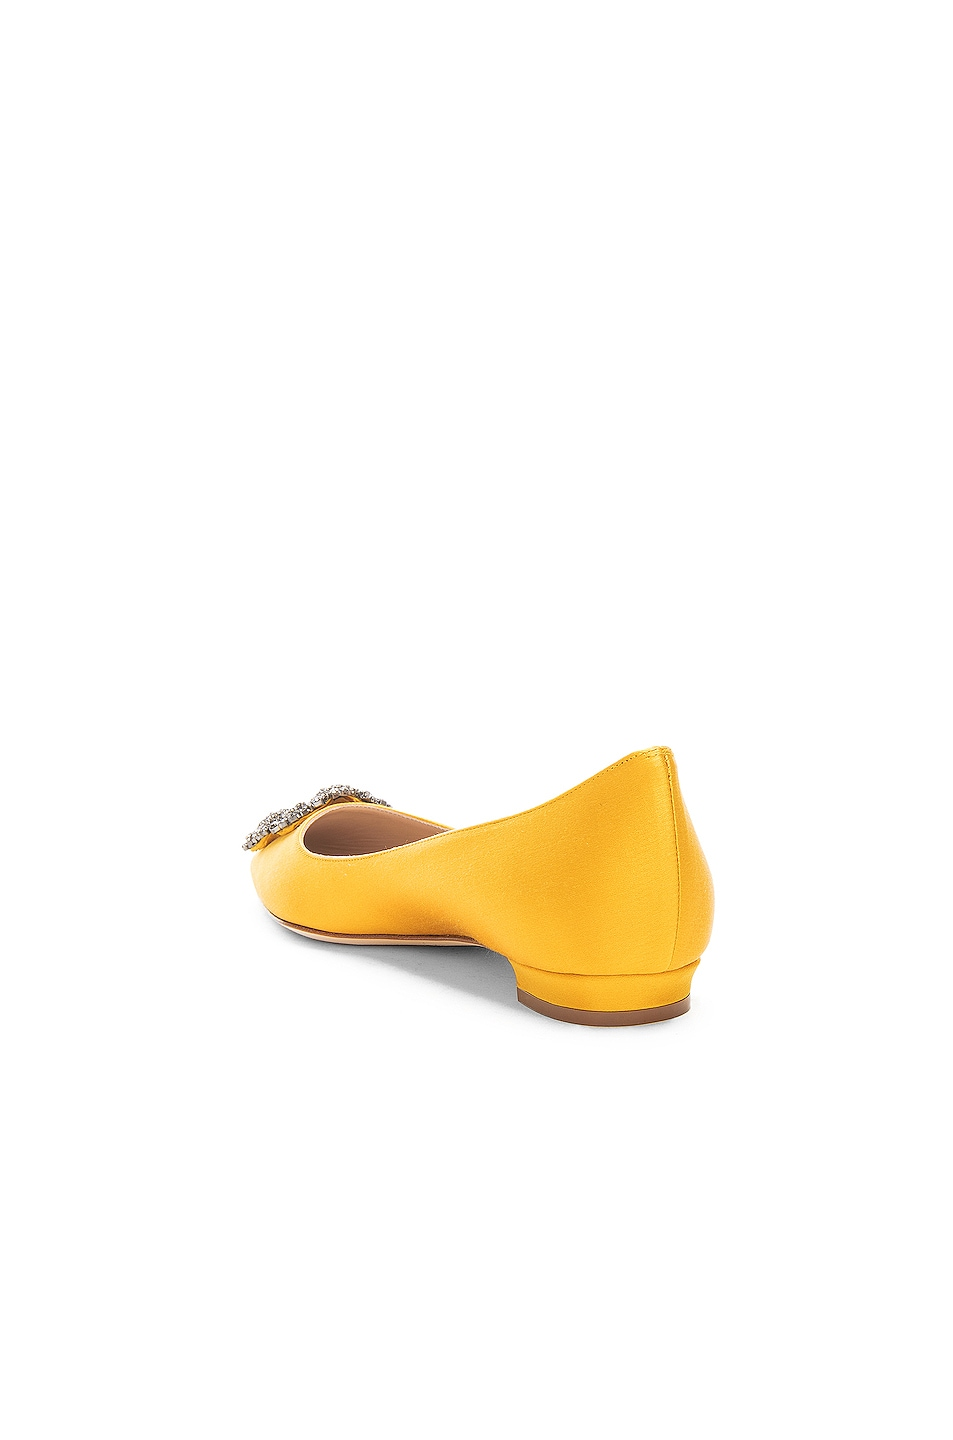 Image 3 of Manolo Blahnik Hangisiflat Satin 10 Pea Flat in Yellow